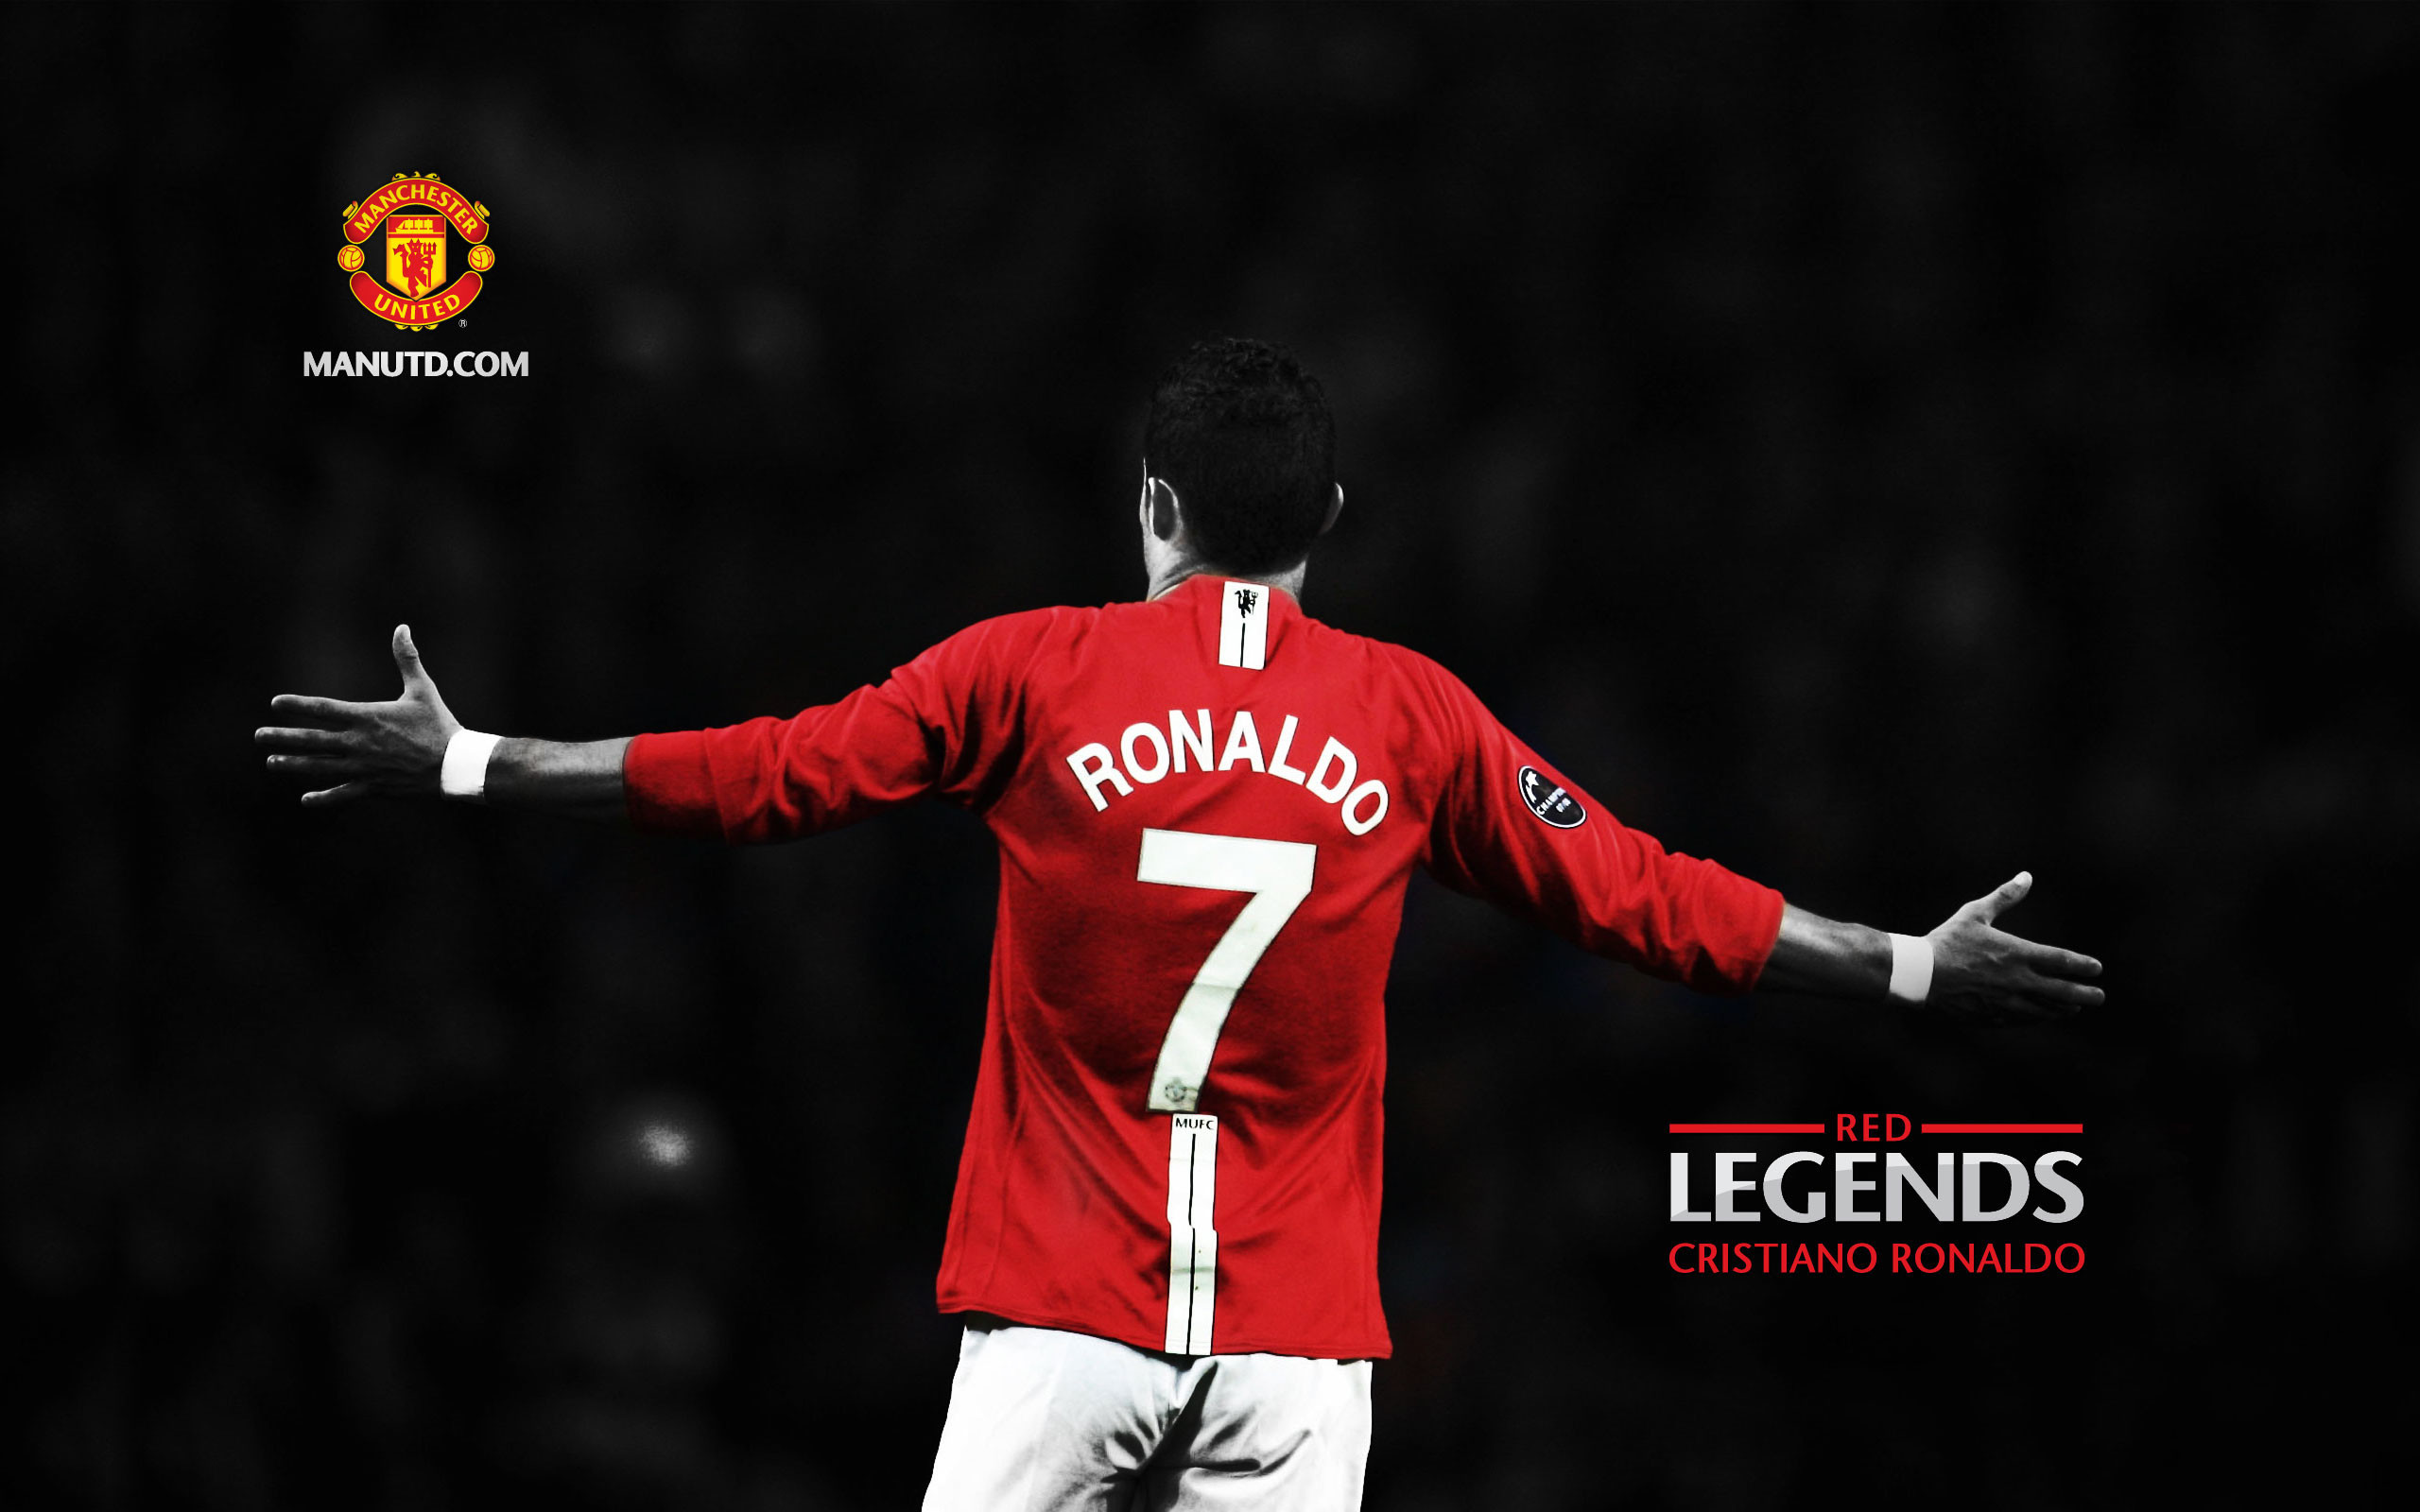 … Newest Manchester United Legends Wallpaper Beautiful Wallpapers Full HD 1080p  Wallpaper – All Kinds Of Wallpaper